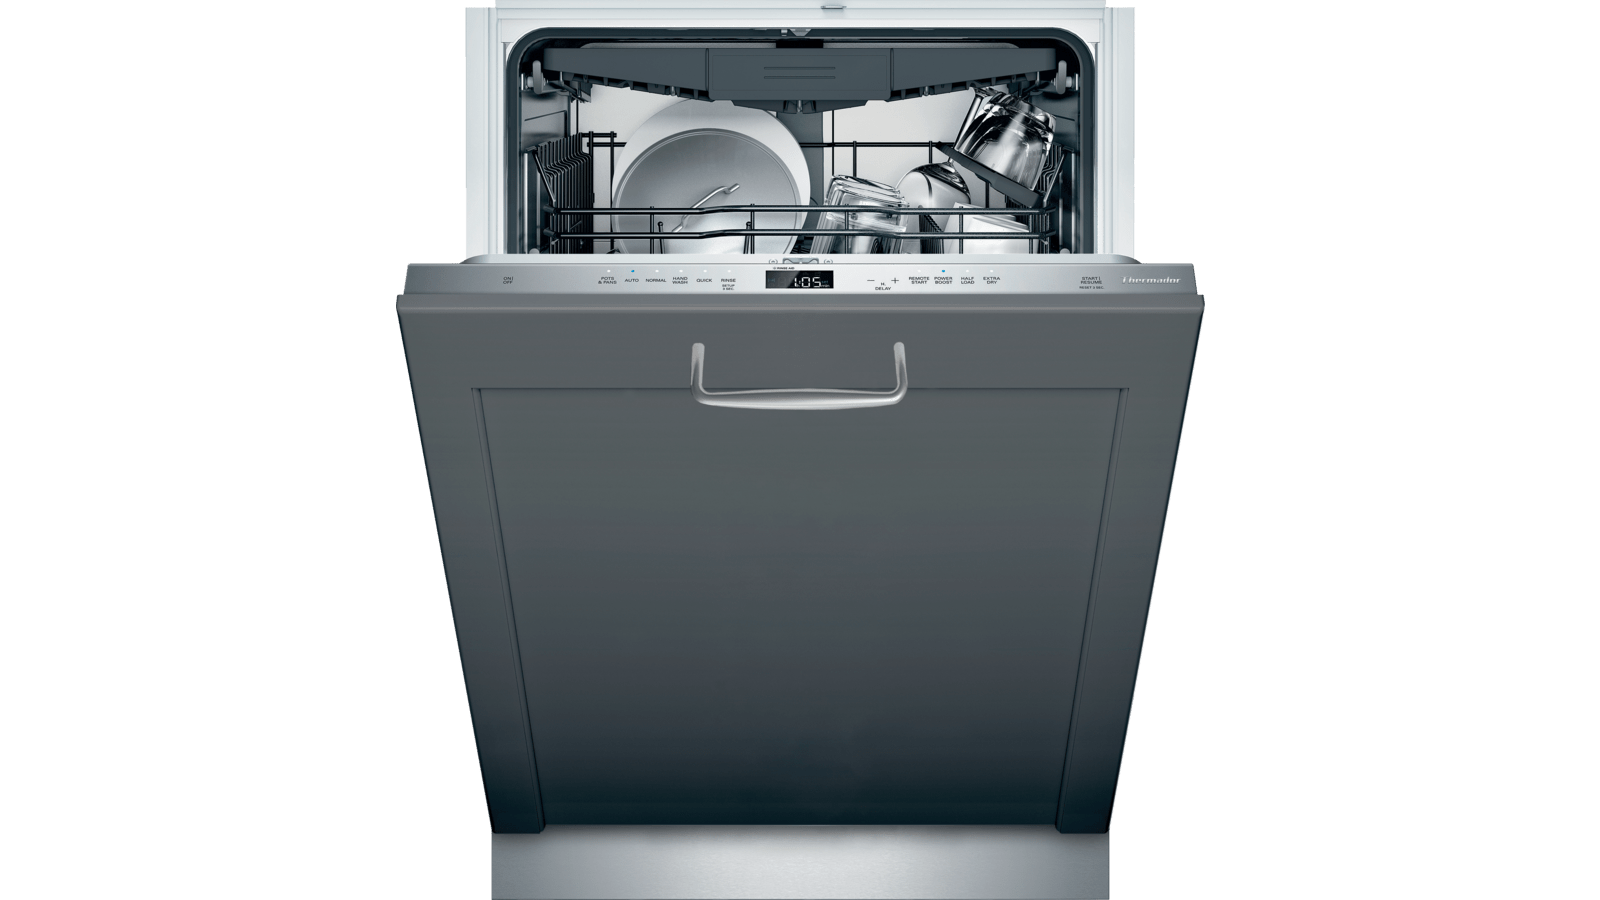 Thermador Dwhd650wpr Dishwasher